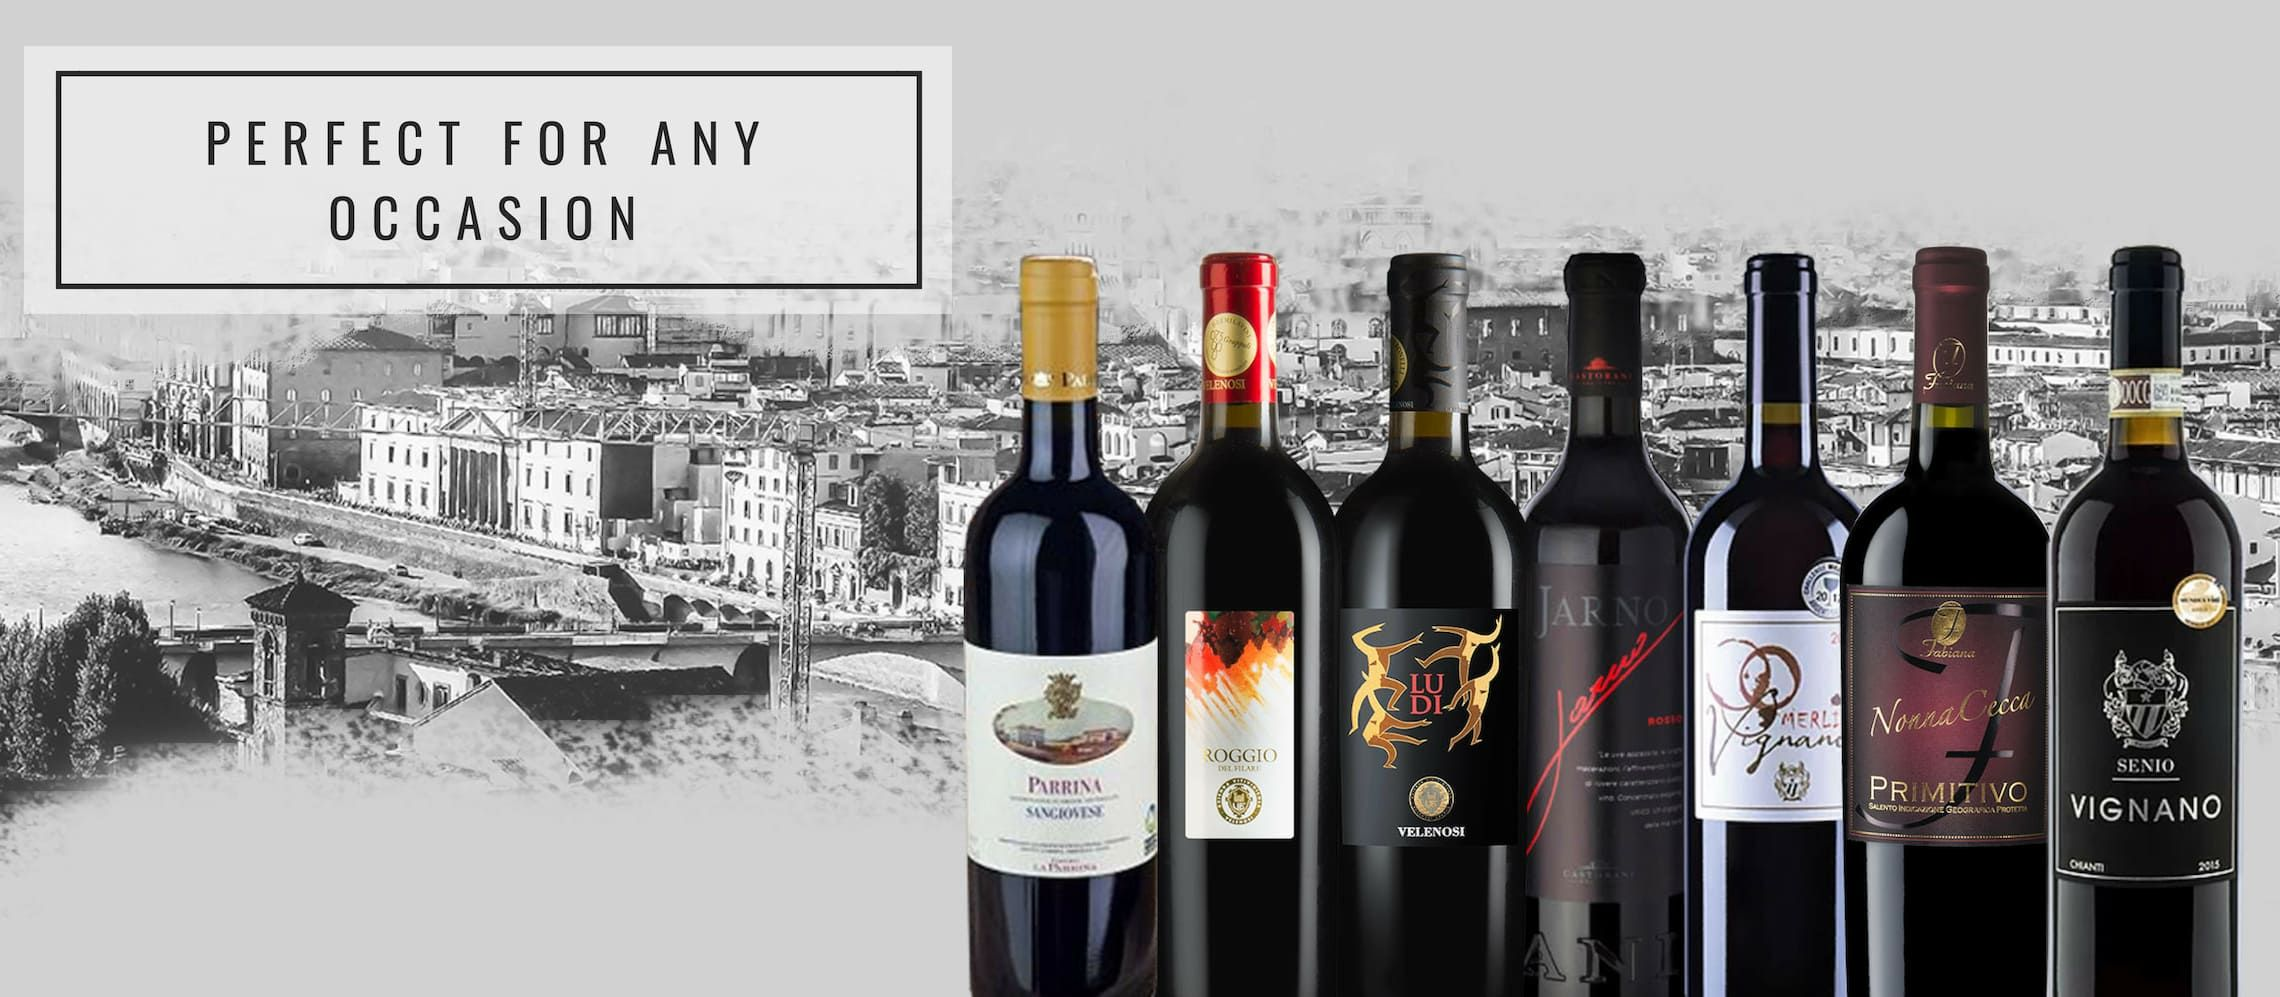 Photo for: Top Italian Wines That Suit Every Occasion